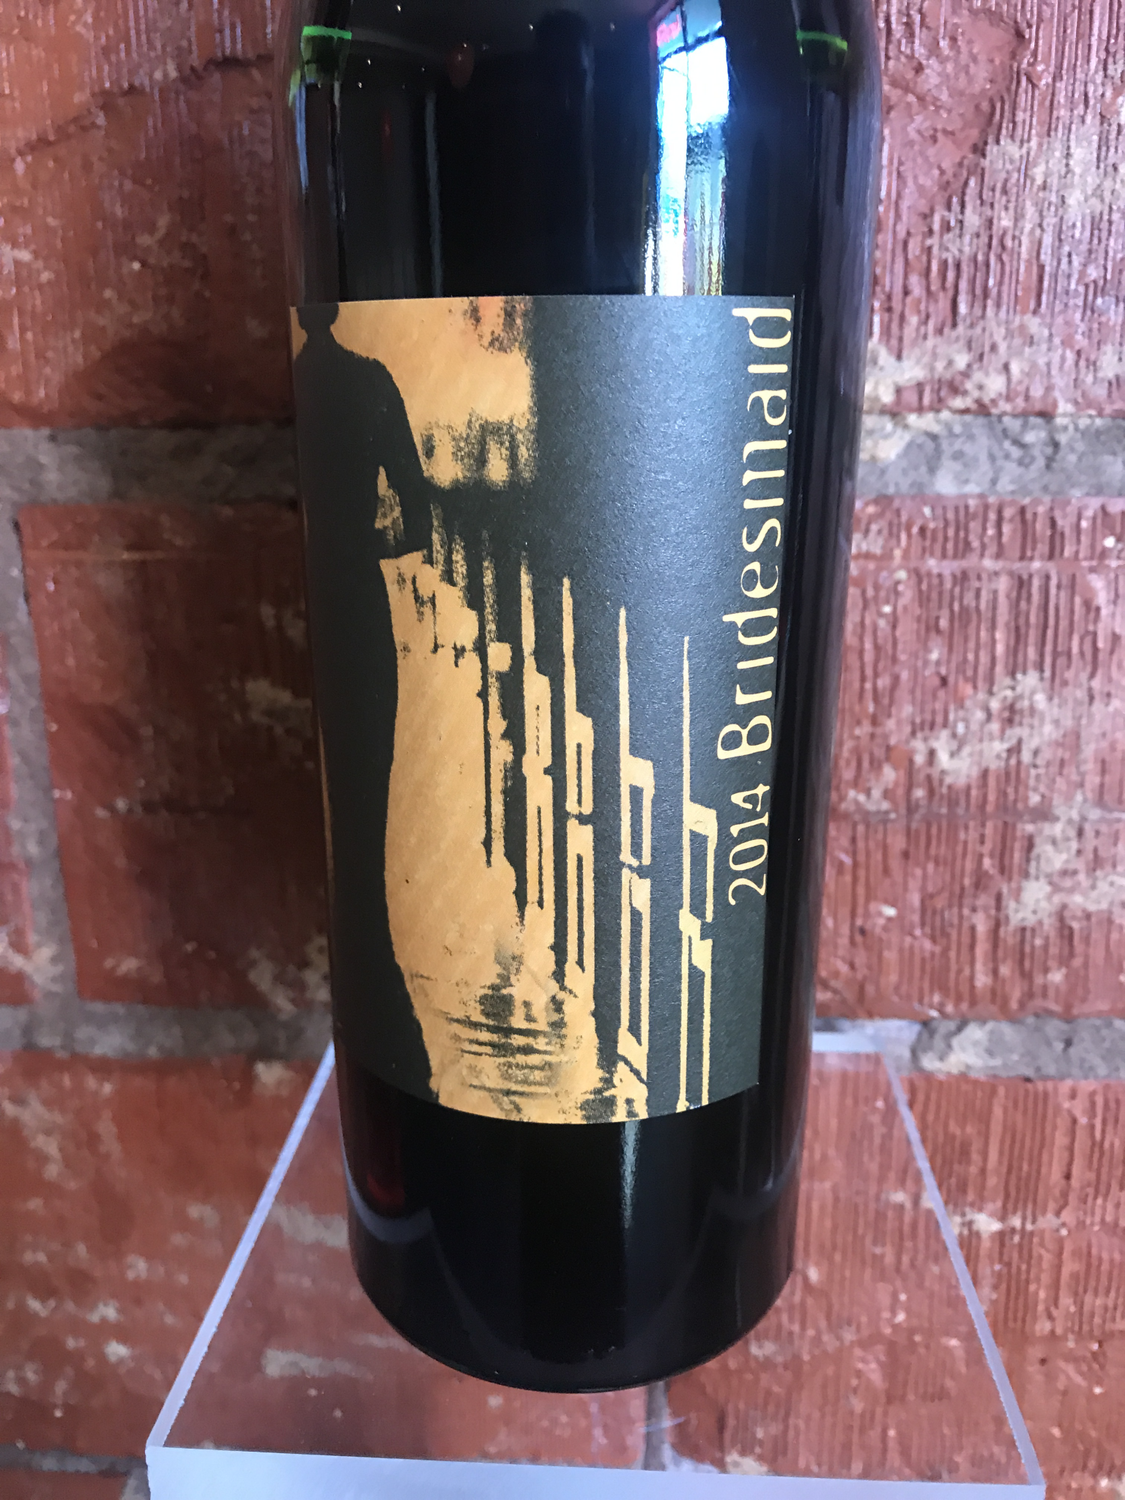 Bridesmaid Red Blend